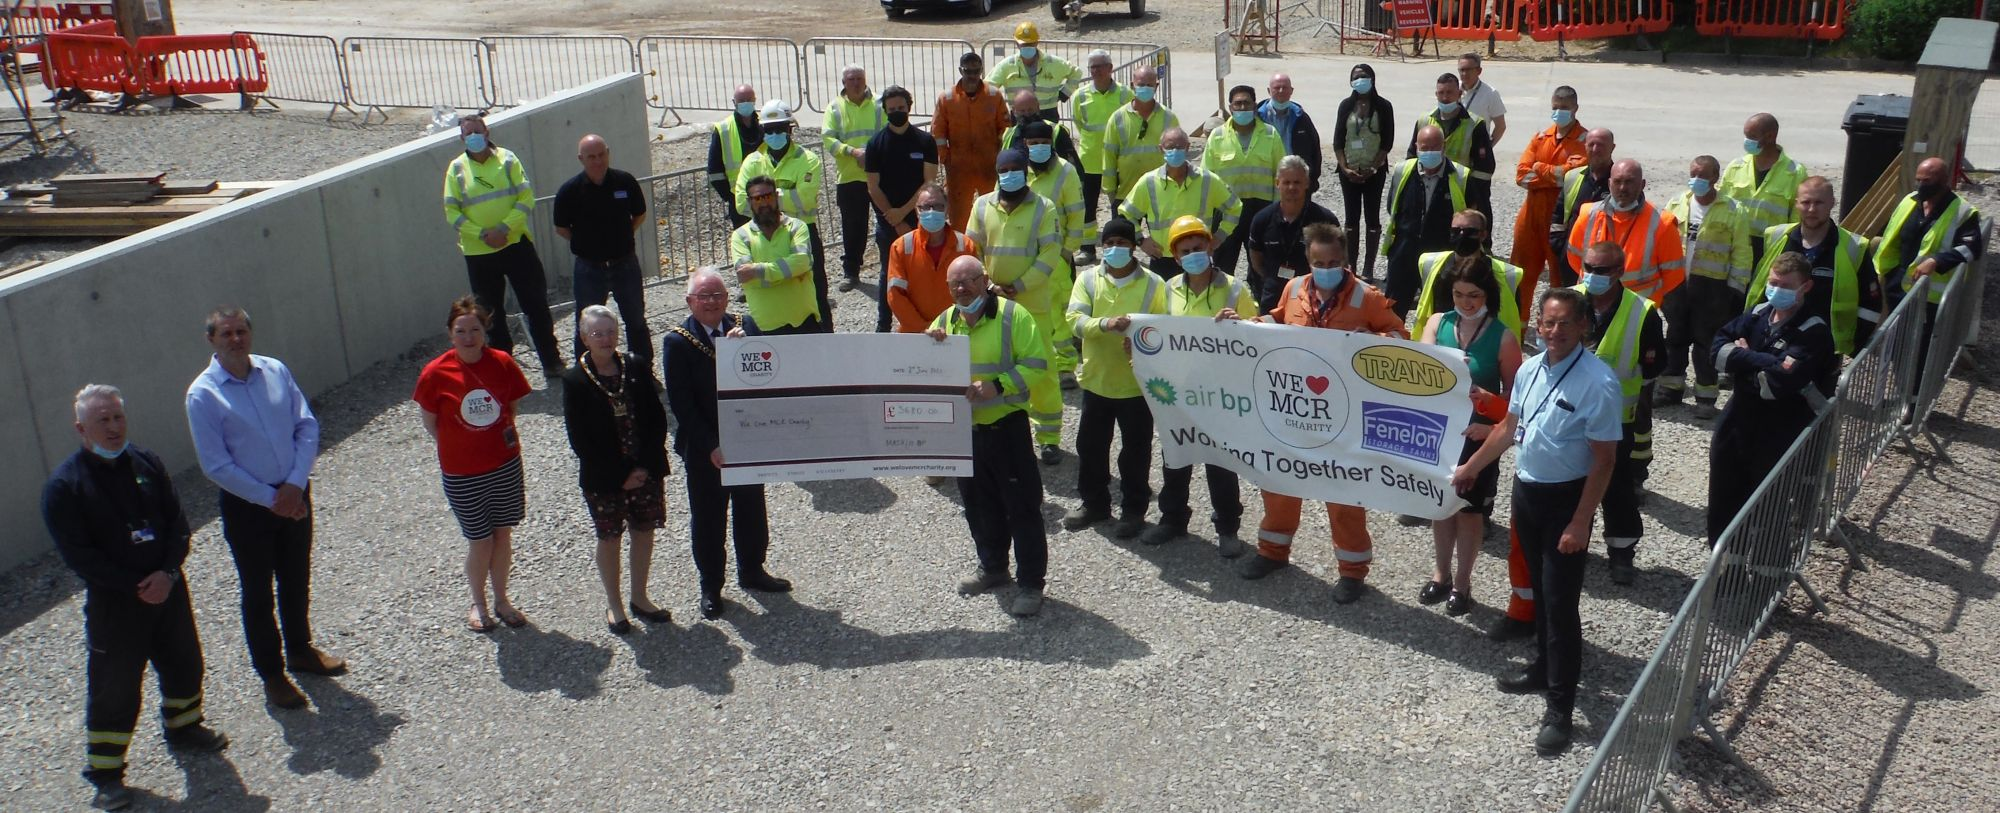 DONATION: A charity cheque for £3,680 is presented to the city's Lord Mayor, Councillor Tommy Judge, at Manchester Airport. Holding the cheque with the Lord Mayor is Mick Satell, Trant Engineering Site Foreman.